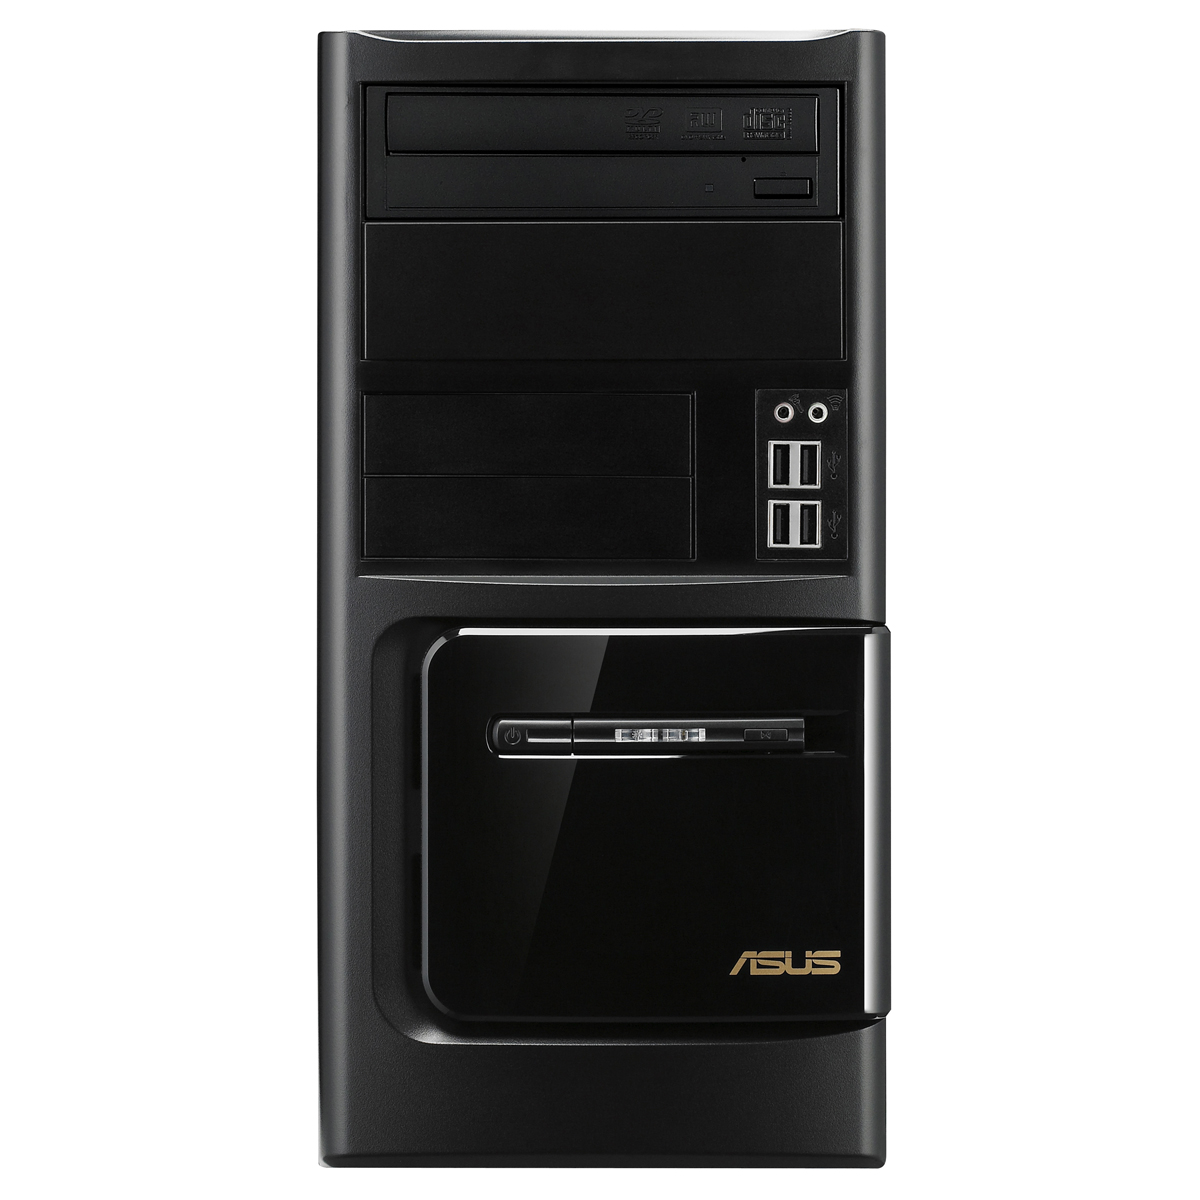 asus bm6630 00g6452062 pc de bureau asus sur. Black Bedroom Furniture Sets. Home Design Ideas